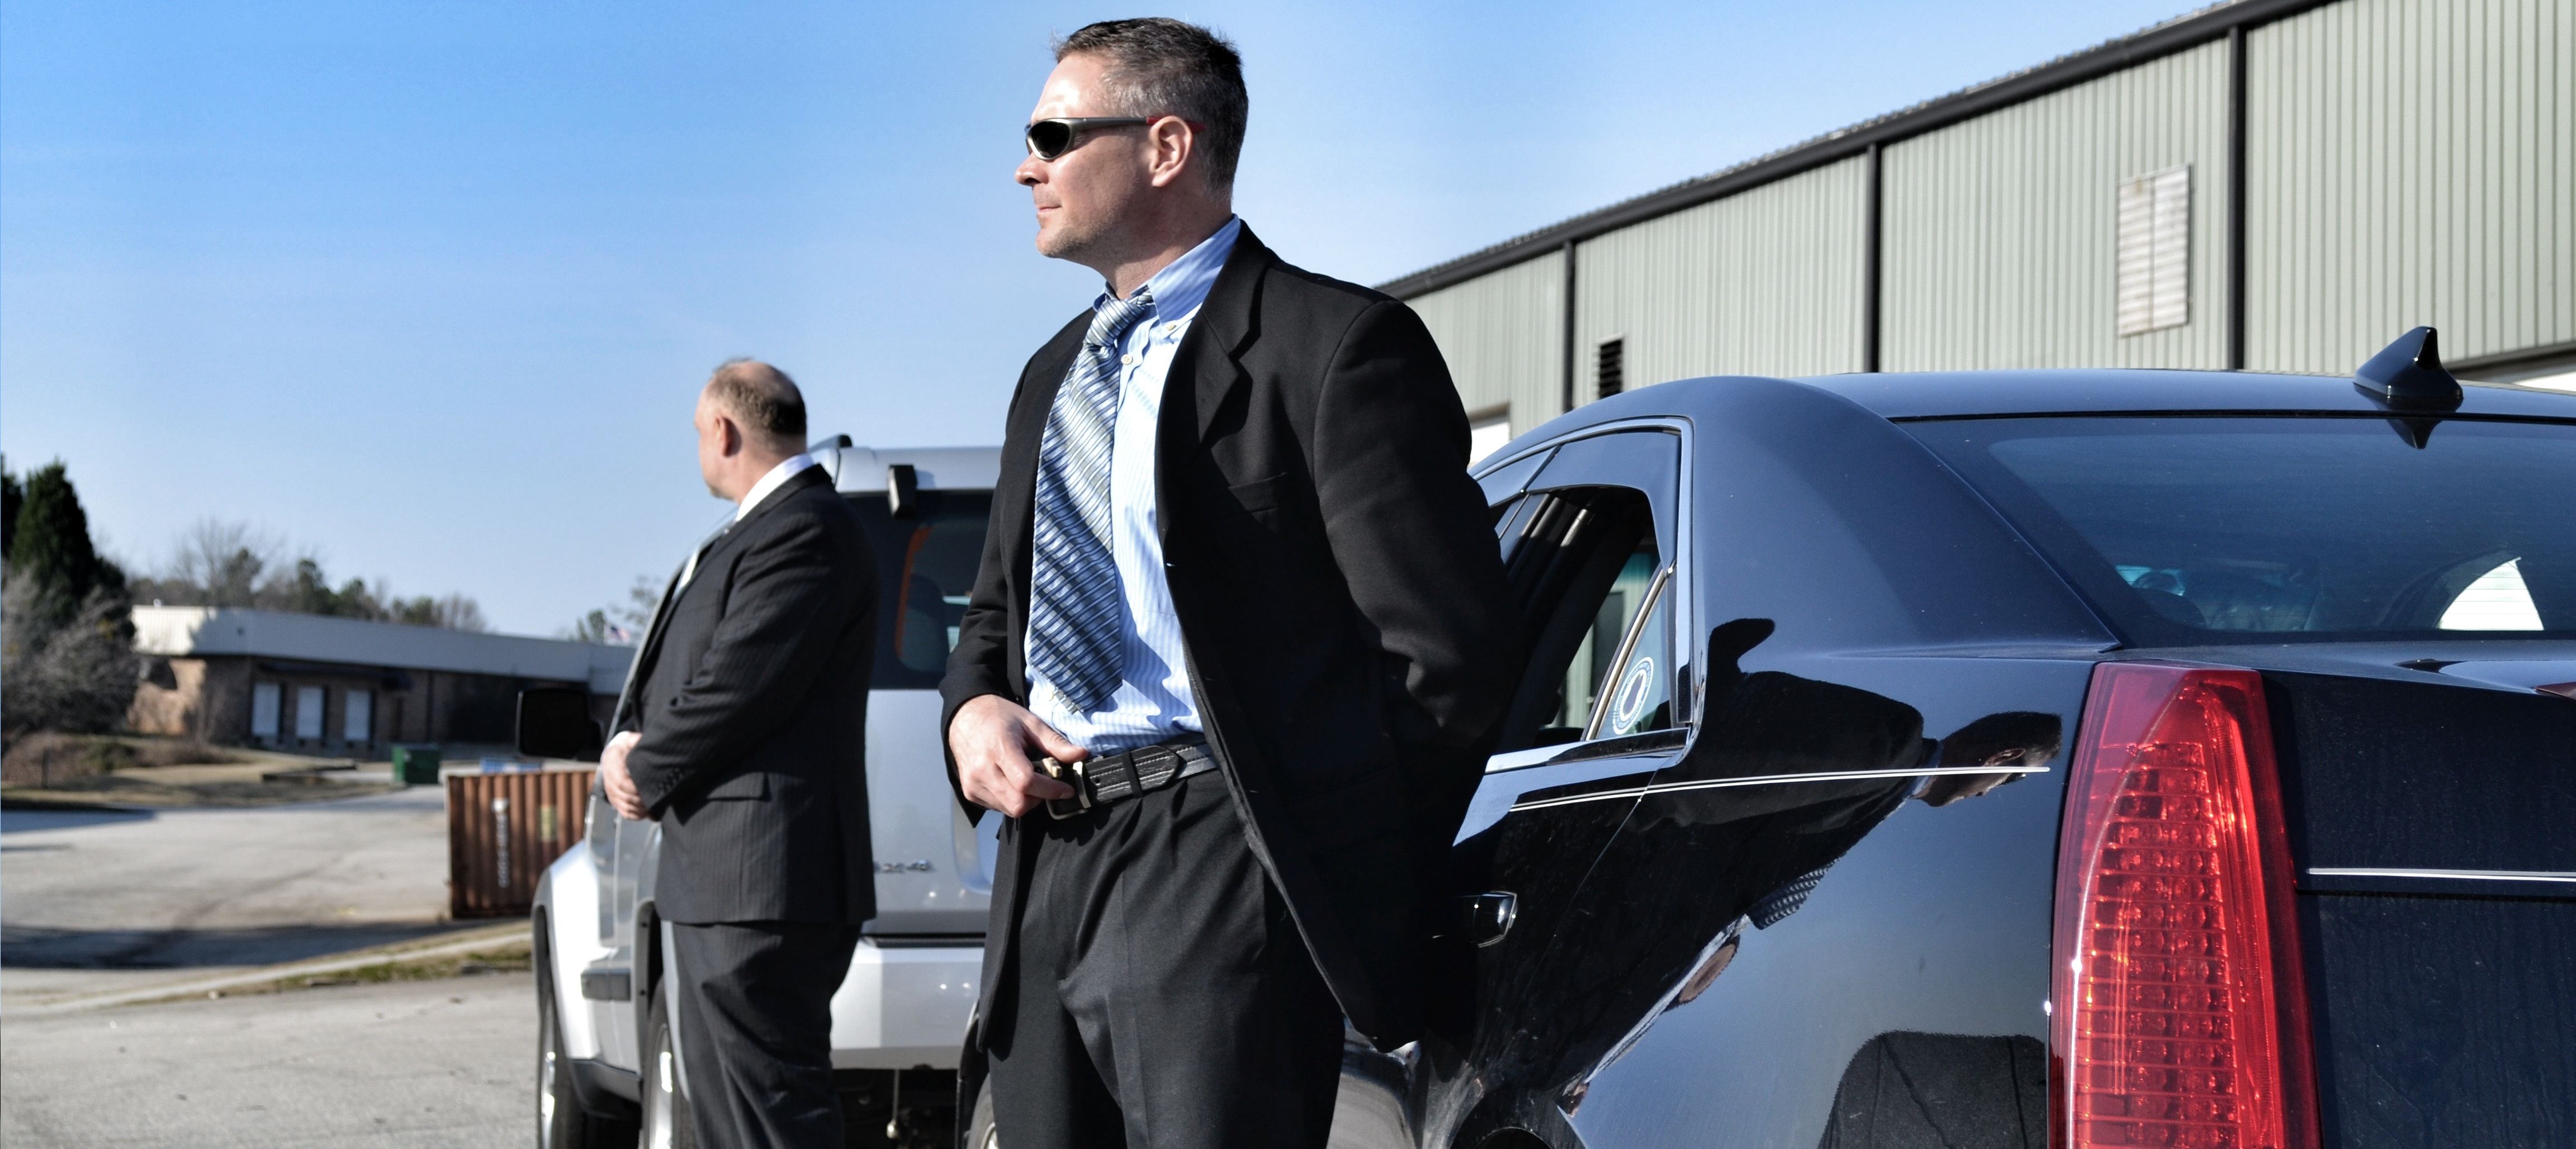 personal protection Recon's ppos or bodyguards are highly trained and qualified security personnel with expertise in personal protection they are deployed to ensure the safety of clients such as: famous celebrities.